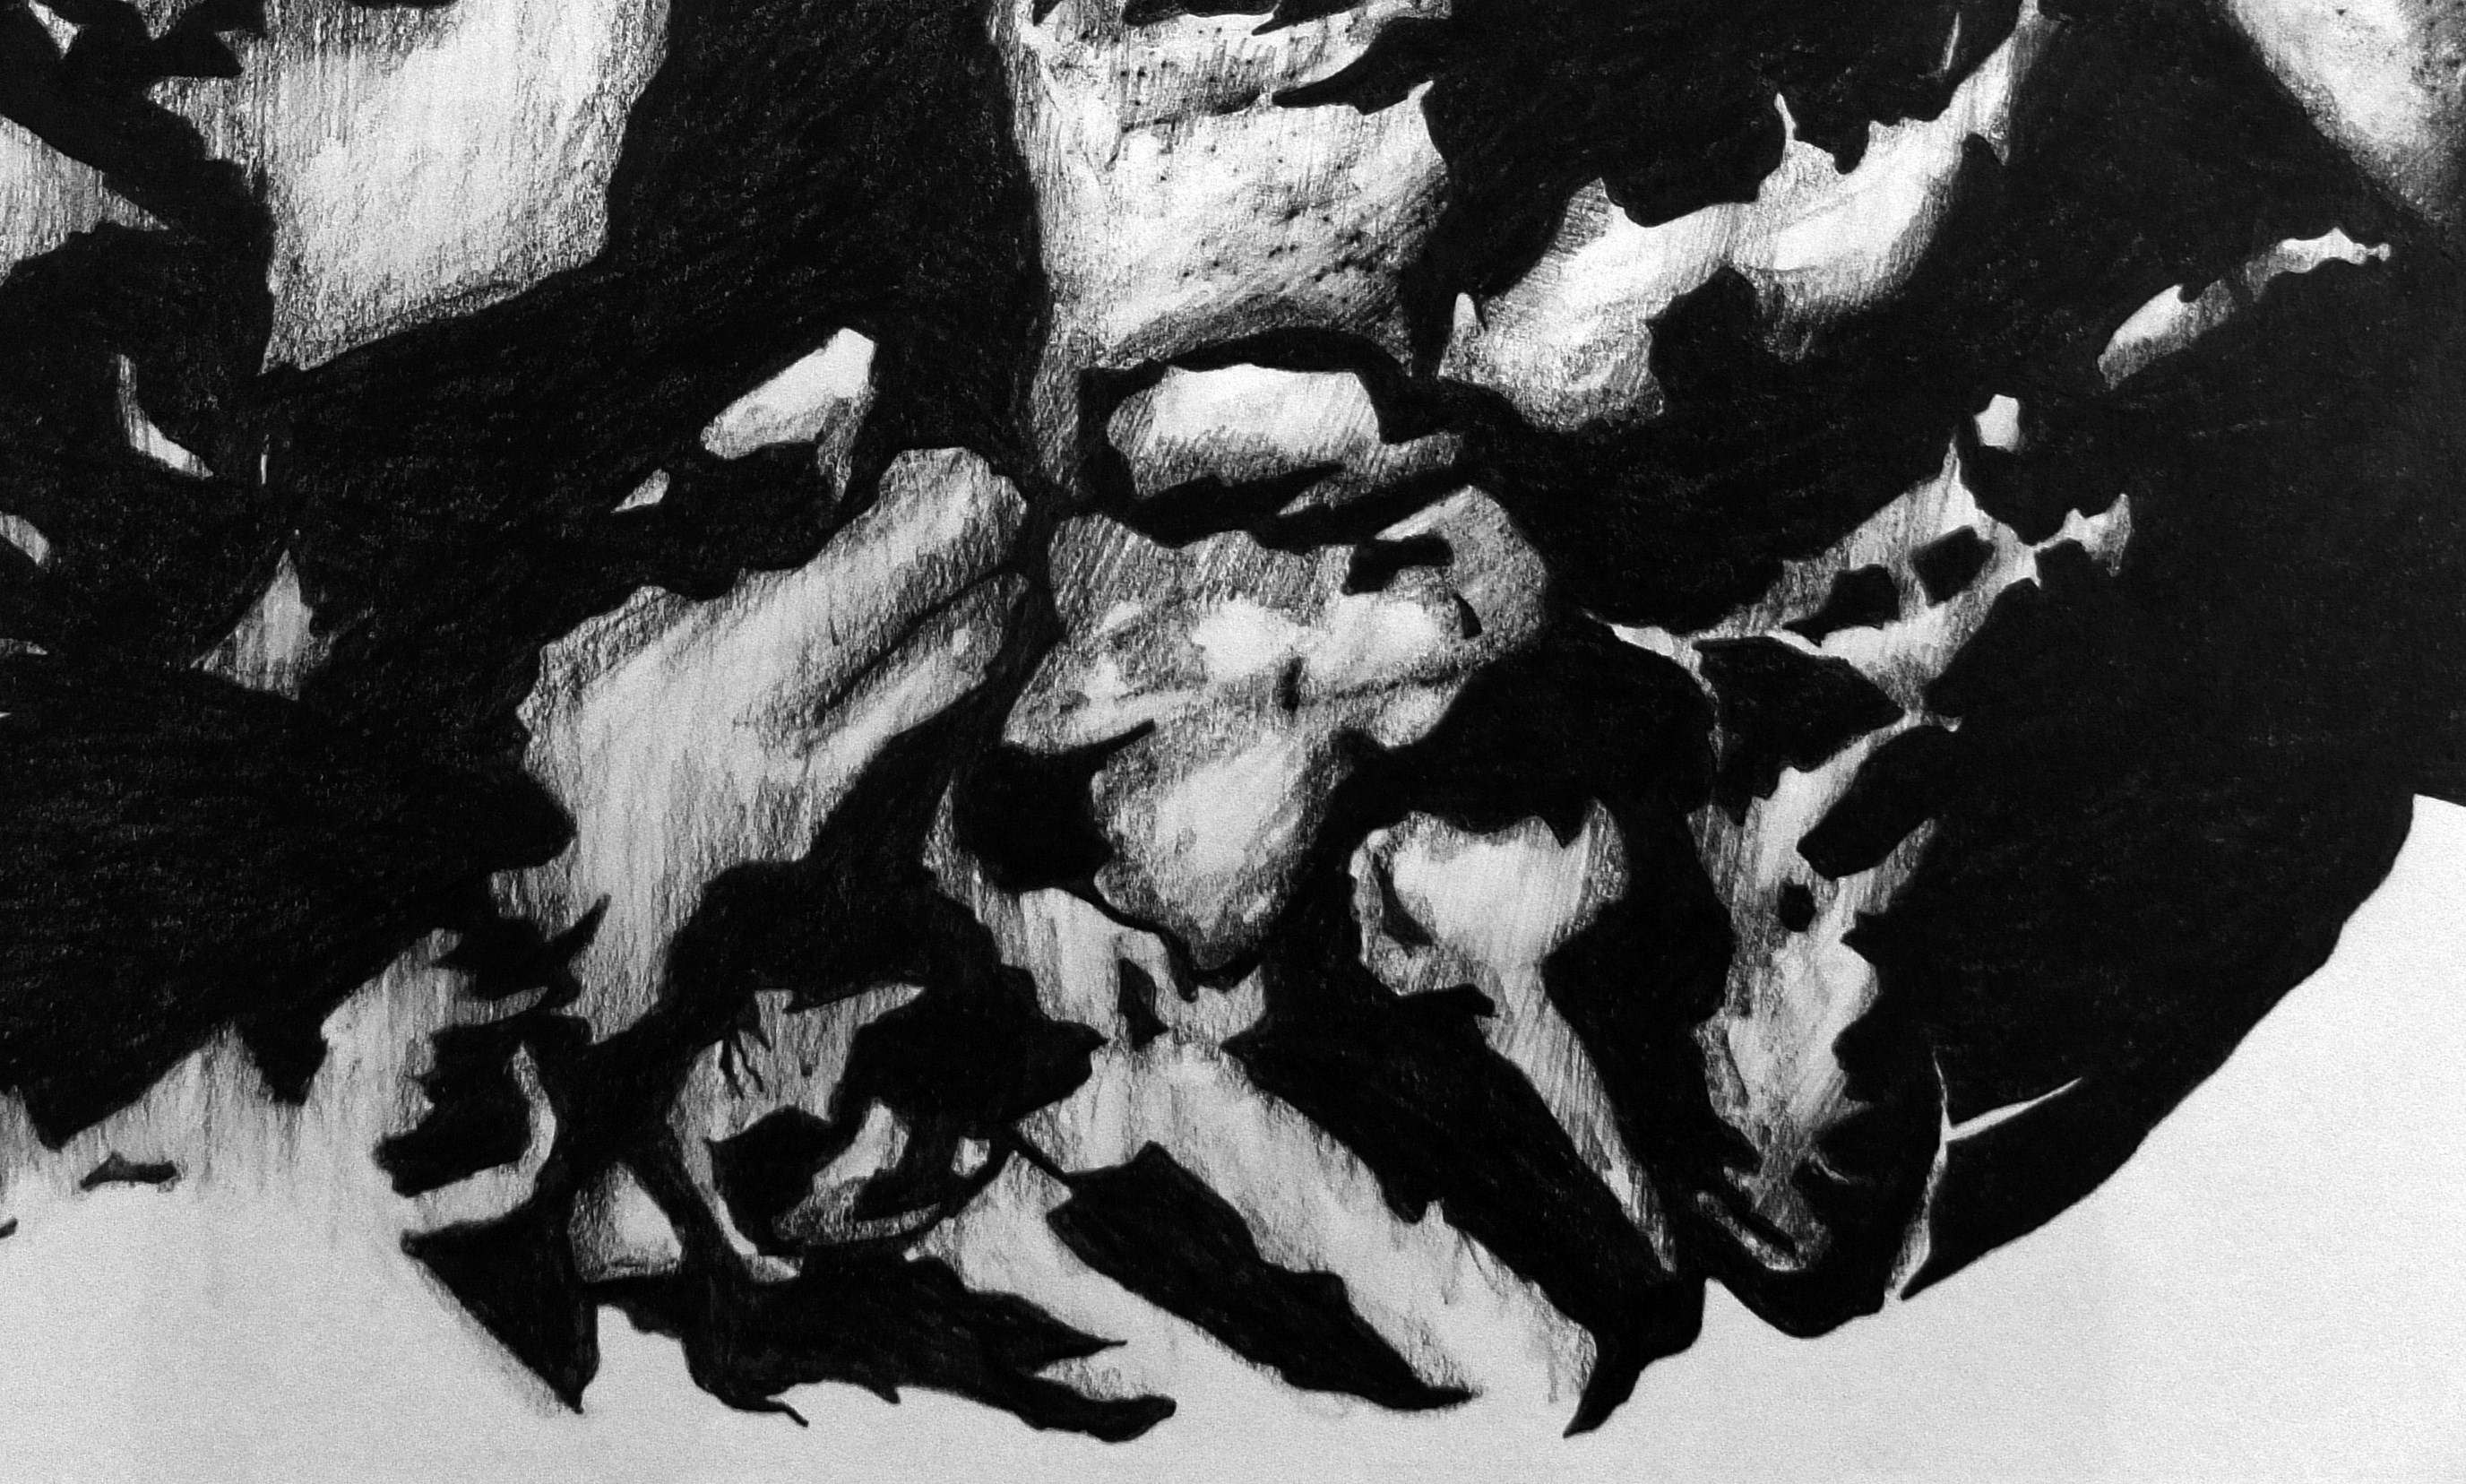 Rocha#3, original Abstract Charcoal Drawing and Illustration by Mariana Alves